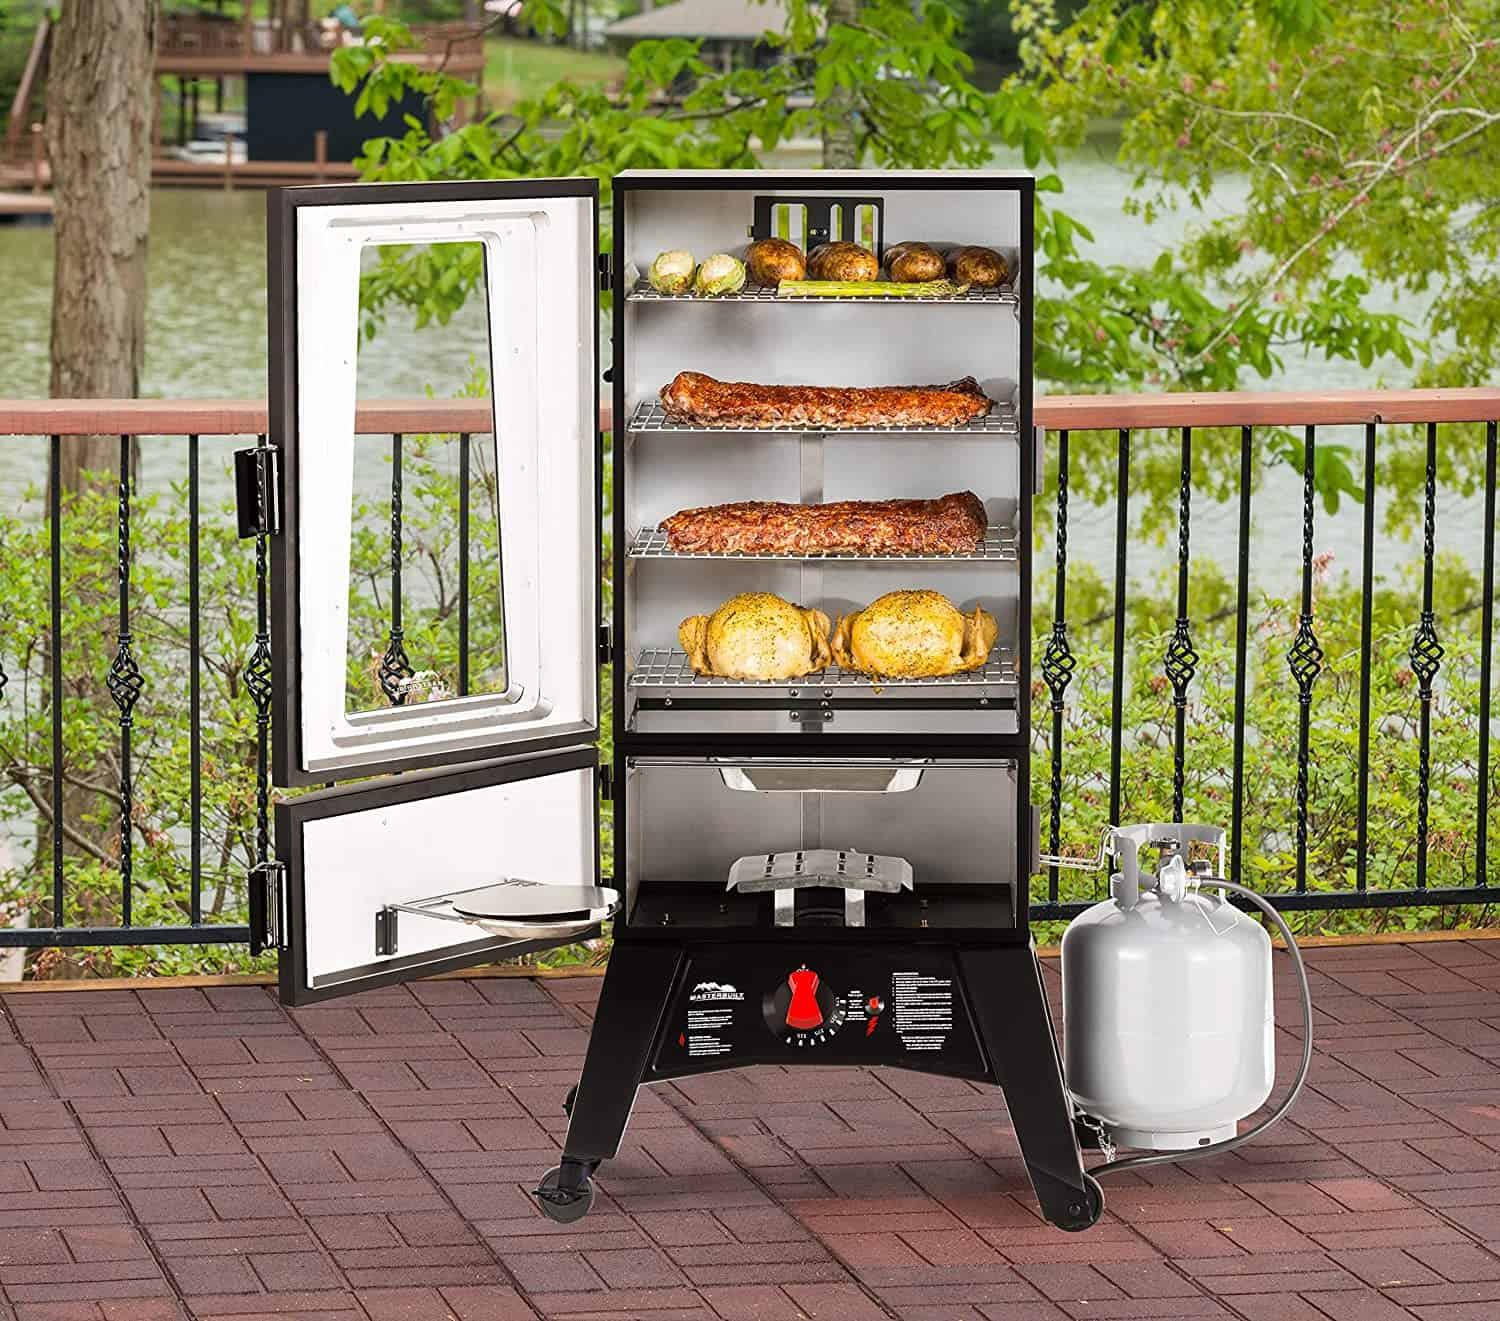 Best choice propane smoker vs electric vs charcoal Masterbuilt MB20051316 Propane Smoker with Thermostat Control